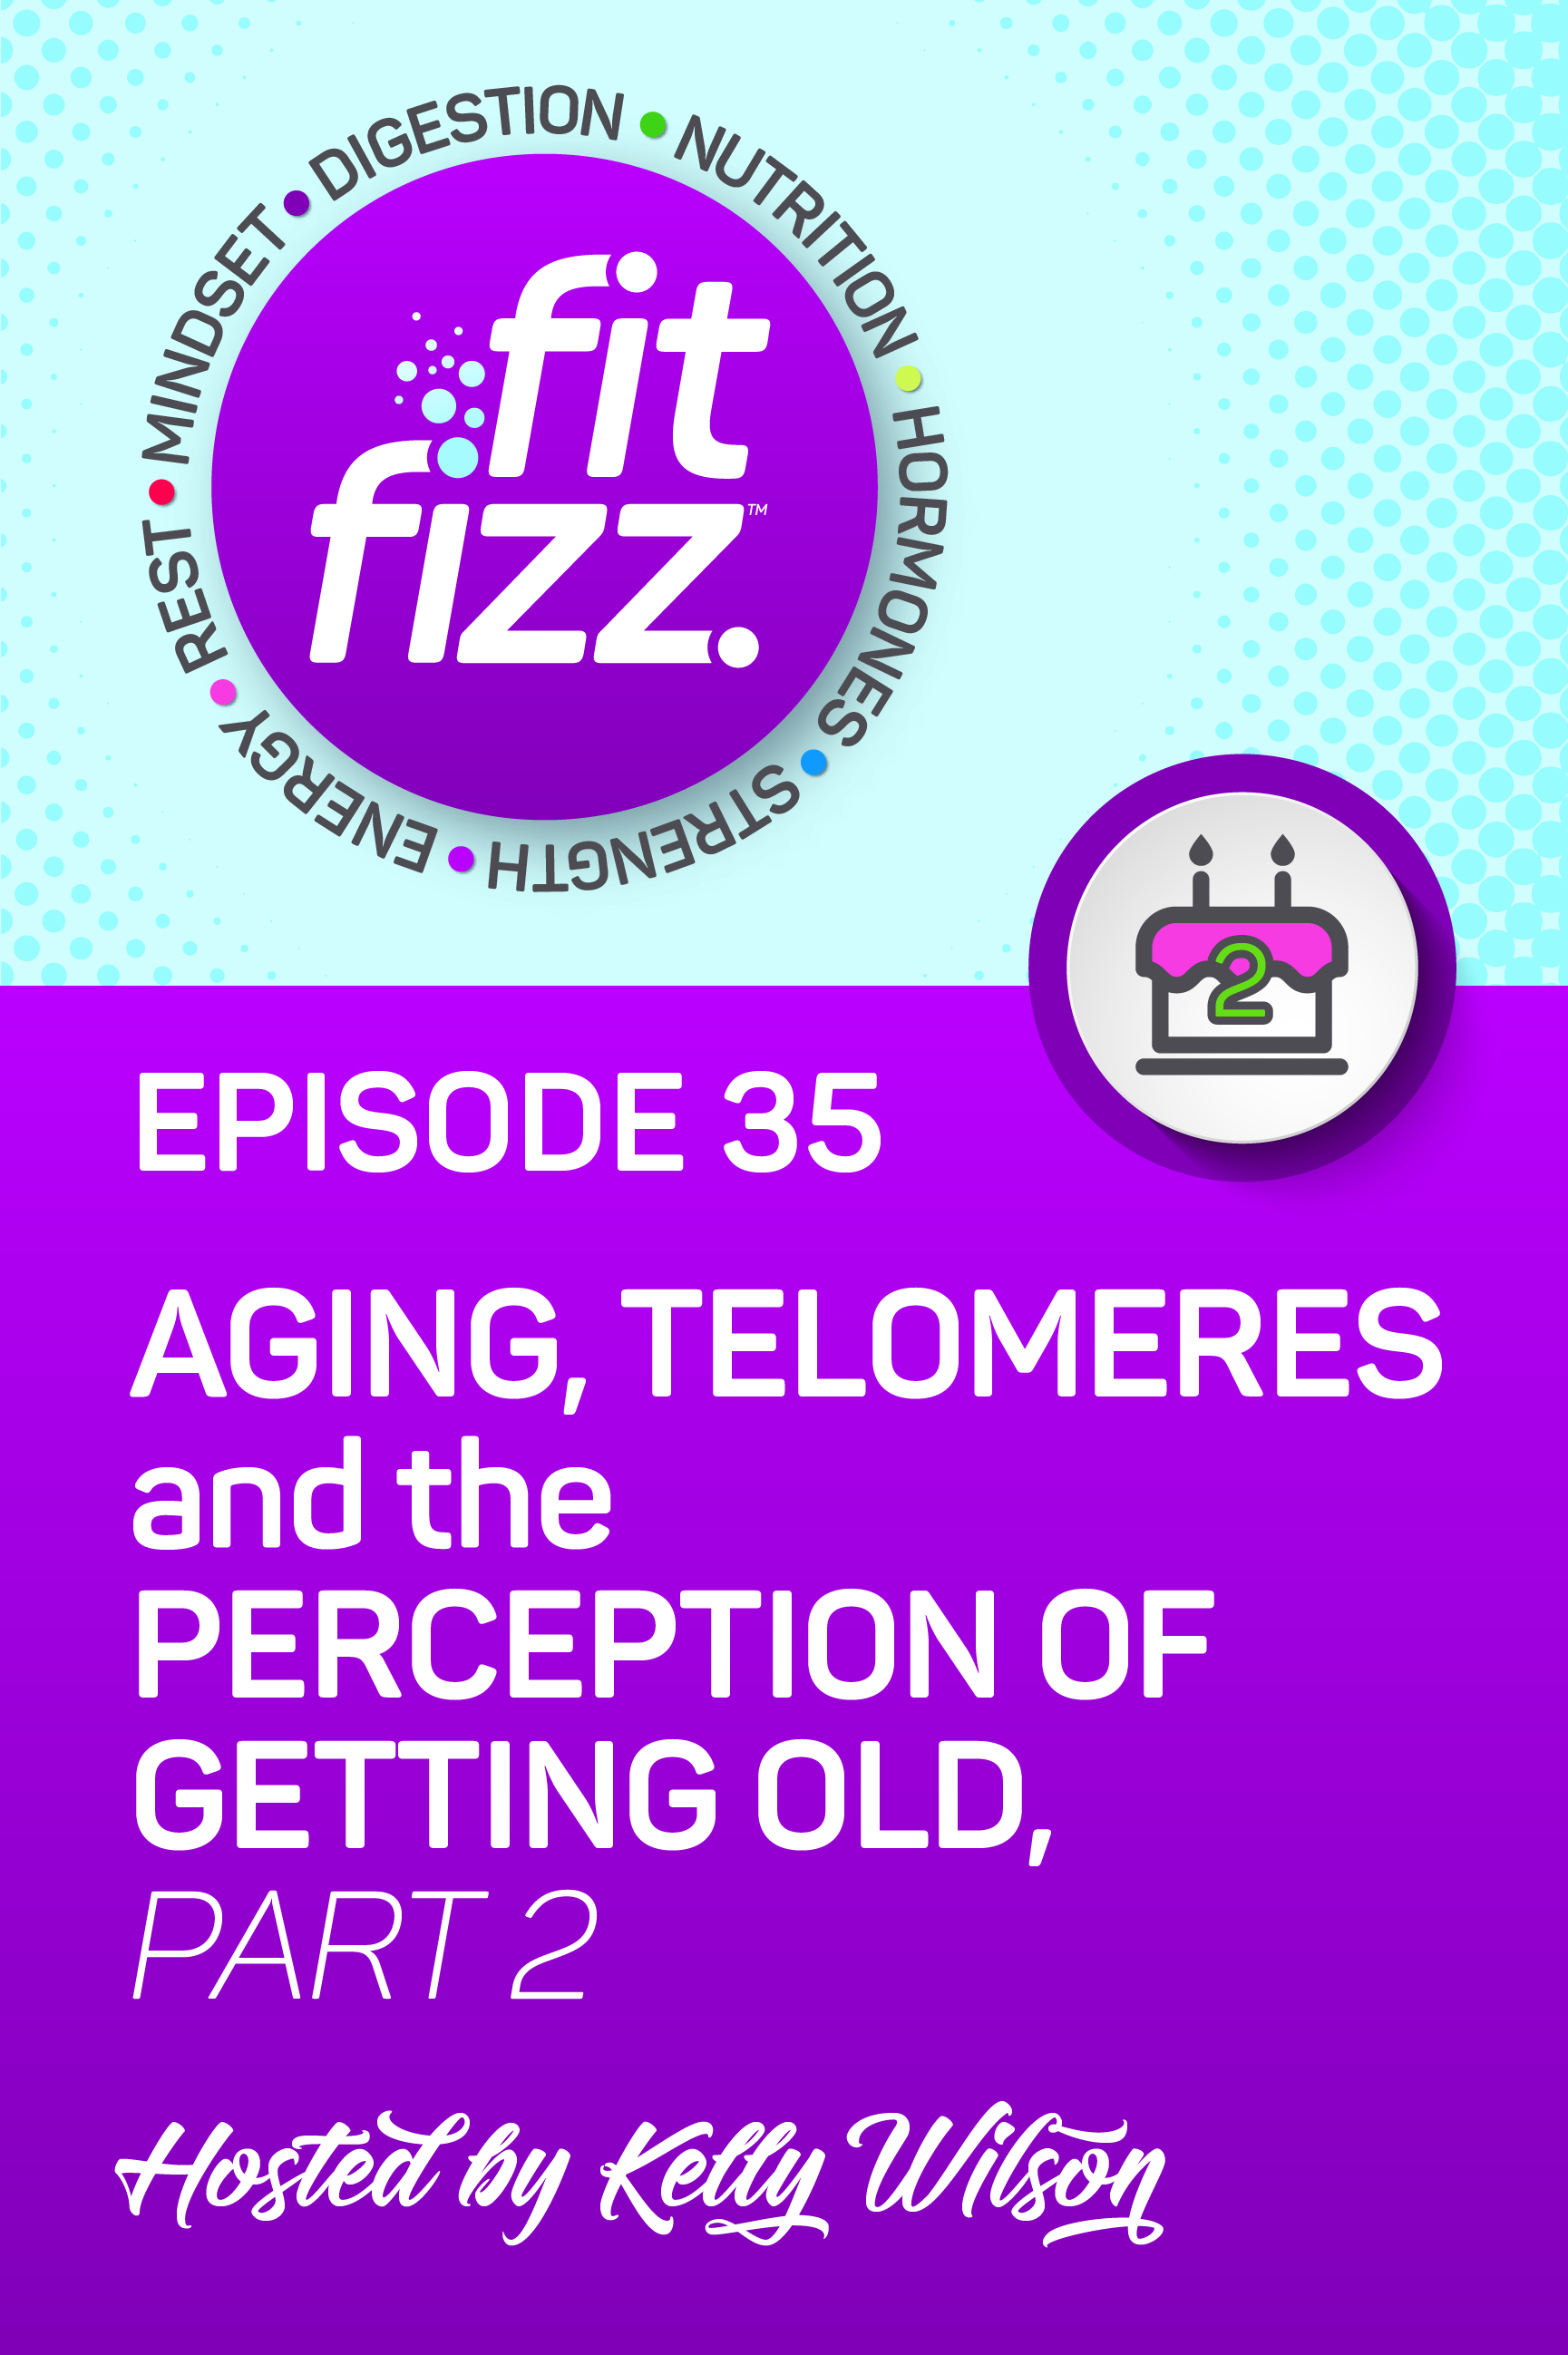 Ep. 35: Aging, Telomeres, and the Perception of Aging, Part 2